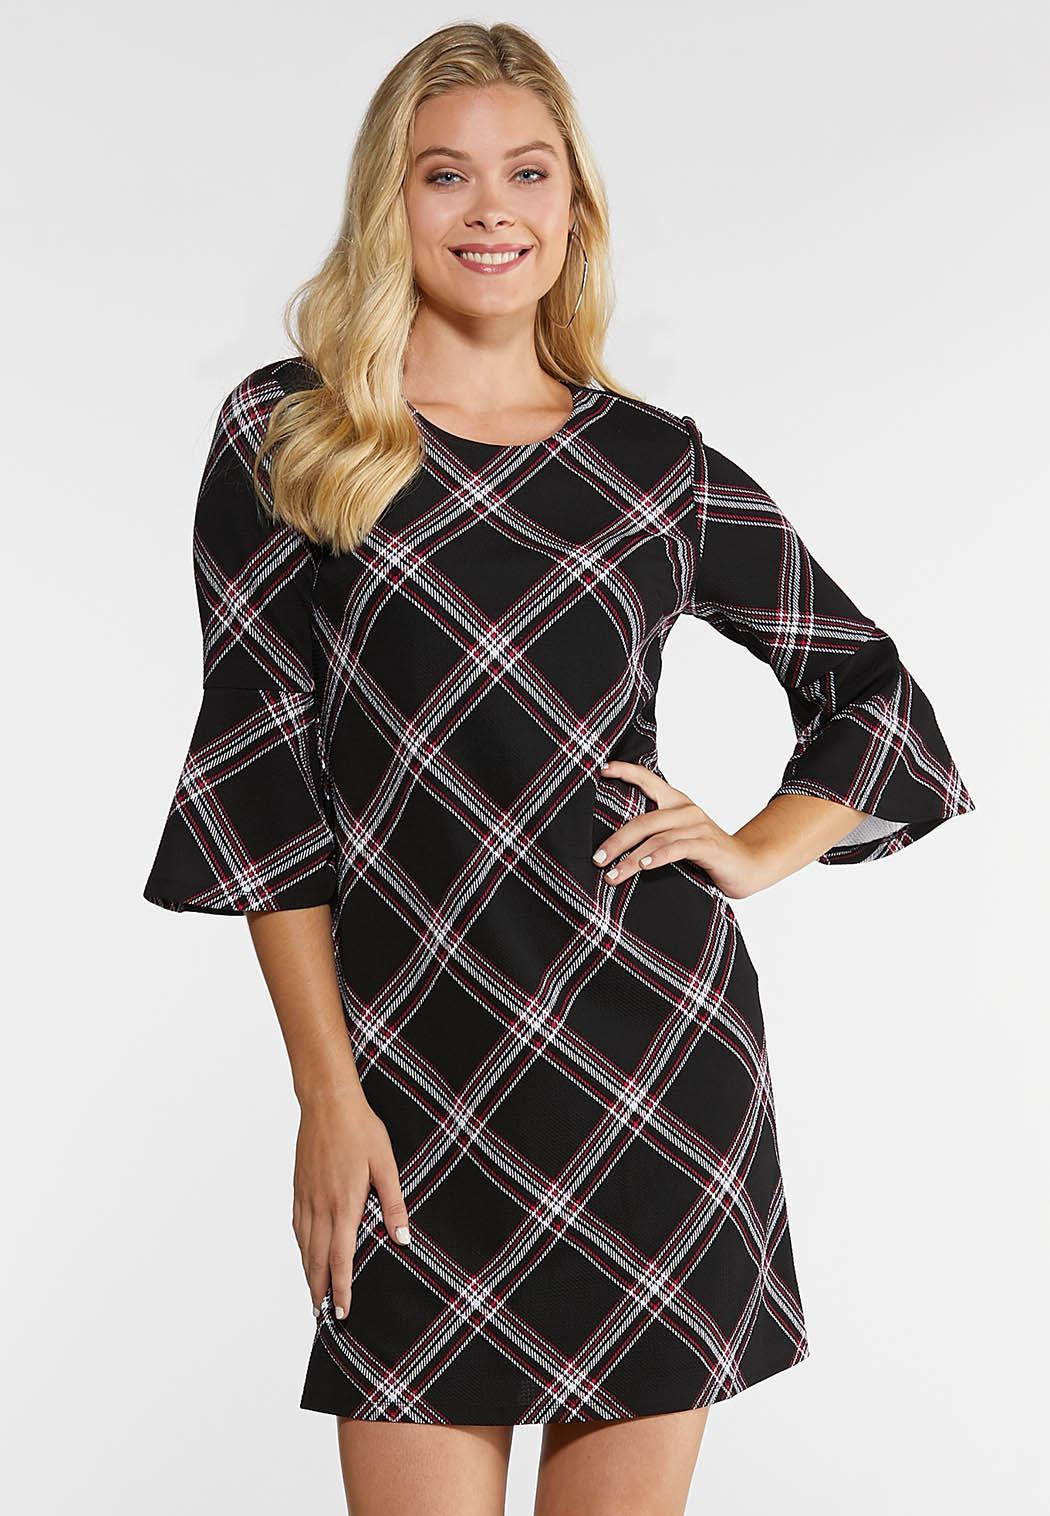 Plus Size Patterned Bell Sleeve Dress Plus Sizes Cato Fashions